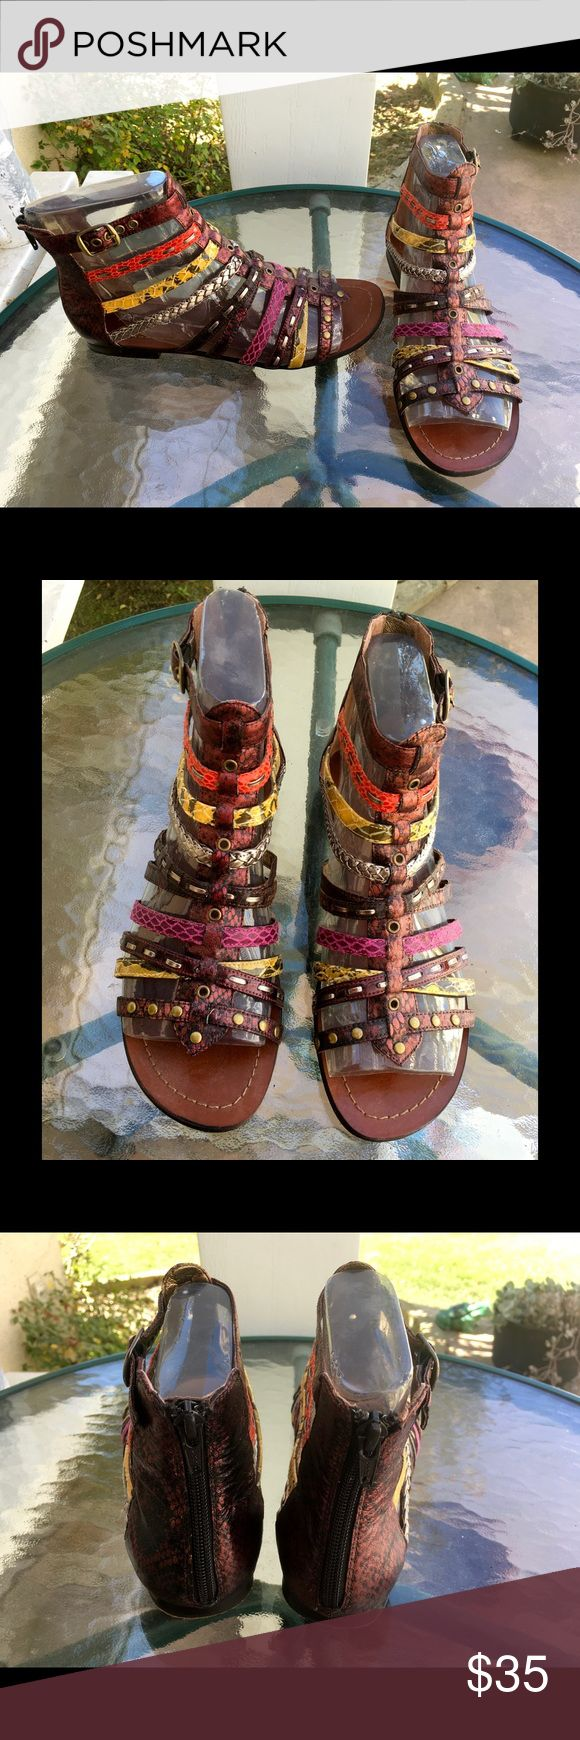 Aldo Strappy Leather Ankle High Back Zip Sandals Open toed flat sandals. EUR 39 US 9. Have 10 multi-color leather straps (some animal print). Top strap buckles; back zipper; above ankle. Gently worn! Excellent condition! Aldo Shoes Sandals